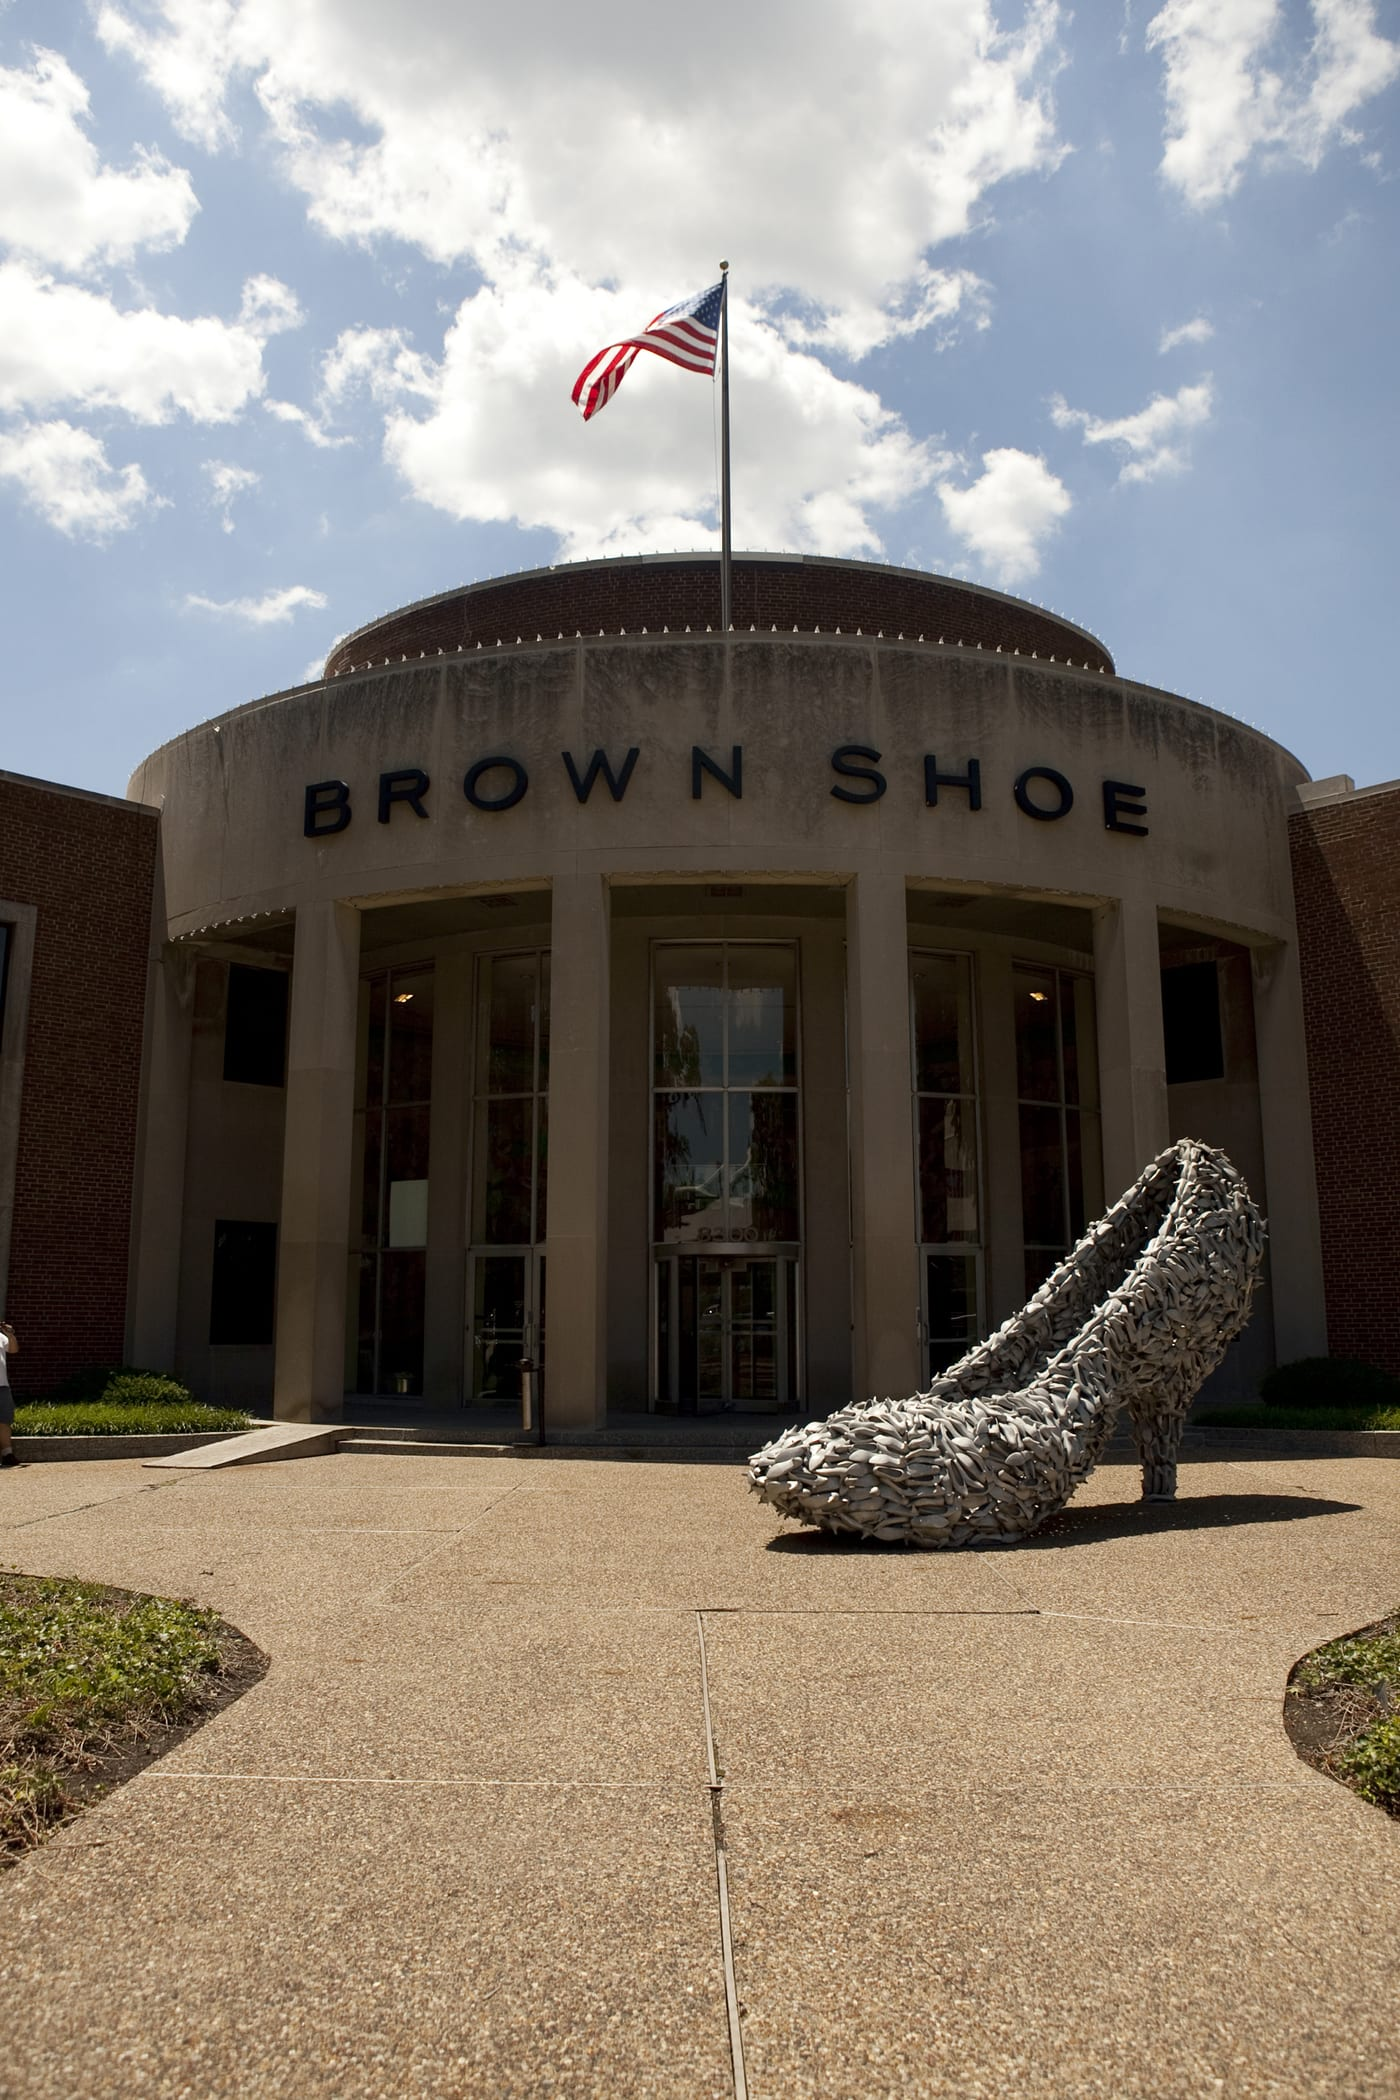 Giant shoe made of shoes on a Missouri road trip.